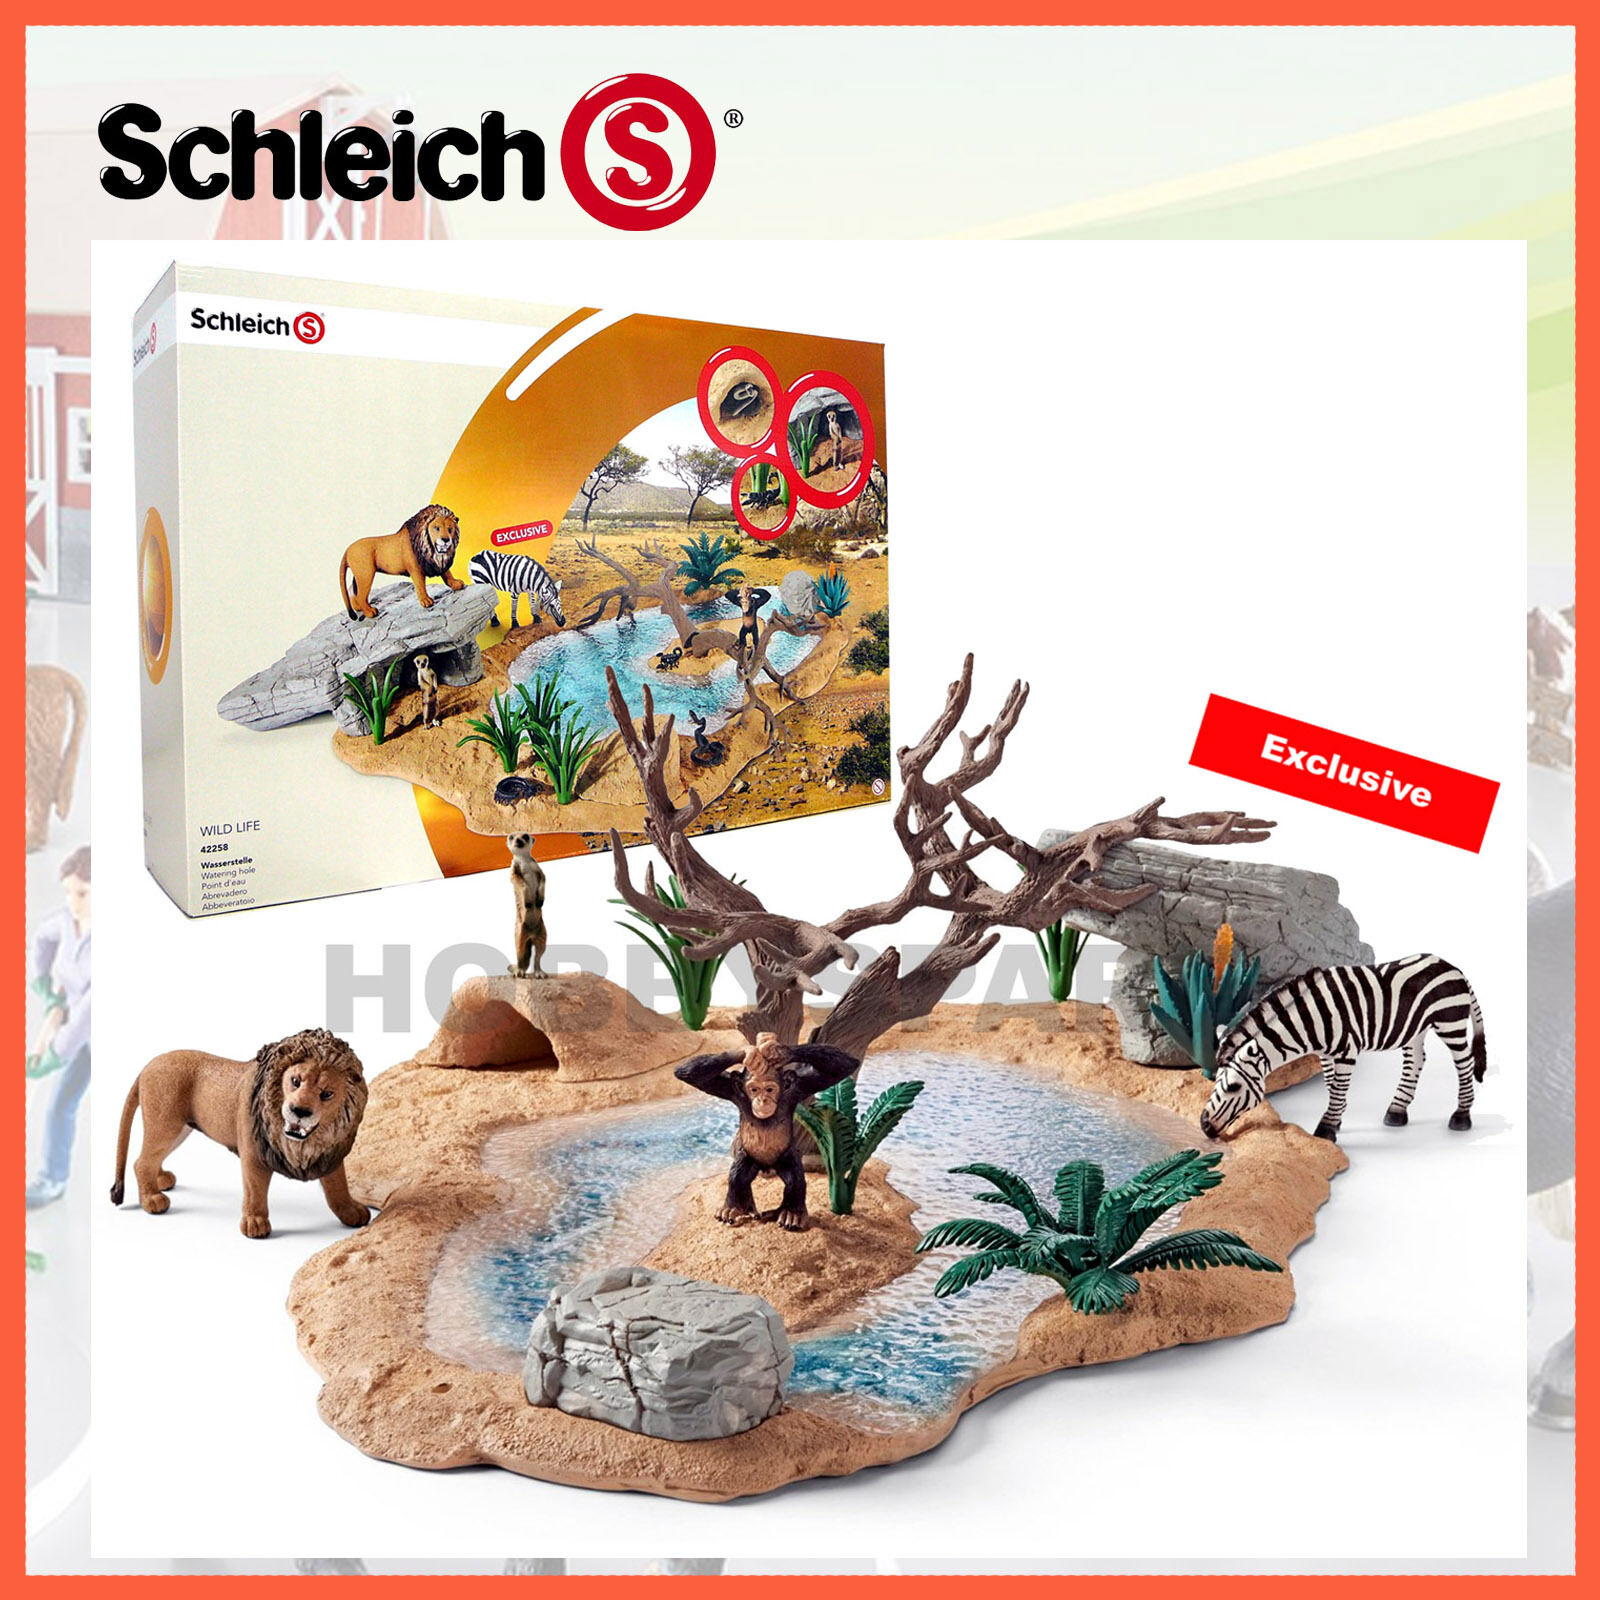 nuovo SCHLEICH  WILD LIFE WATERING HOLE SET with EXCLUSIVE ZEBRA 42258 He PAINTED  servizio di prima classe